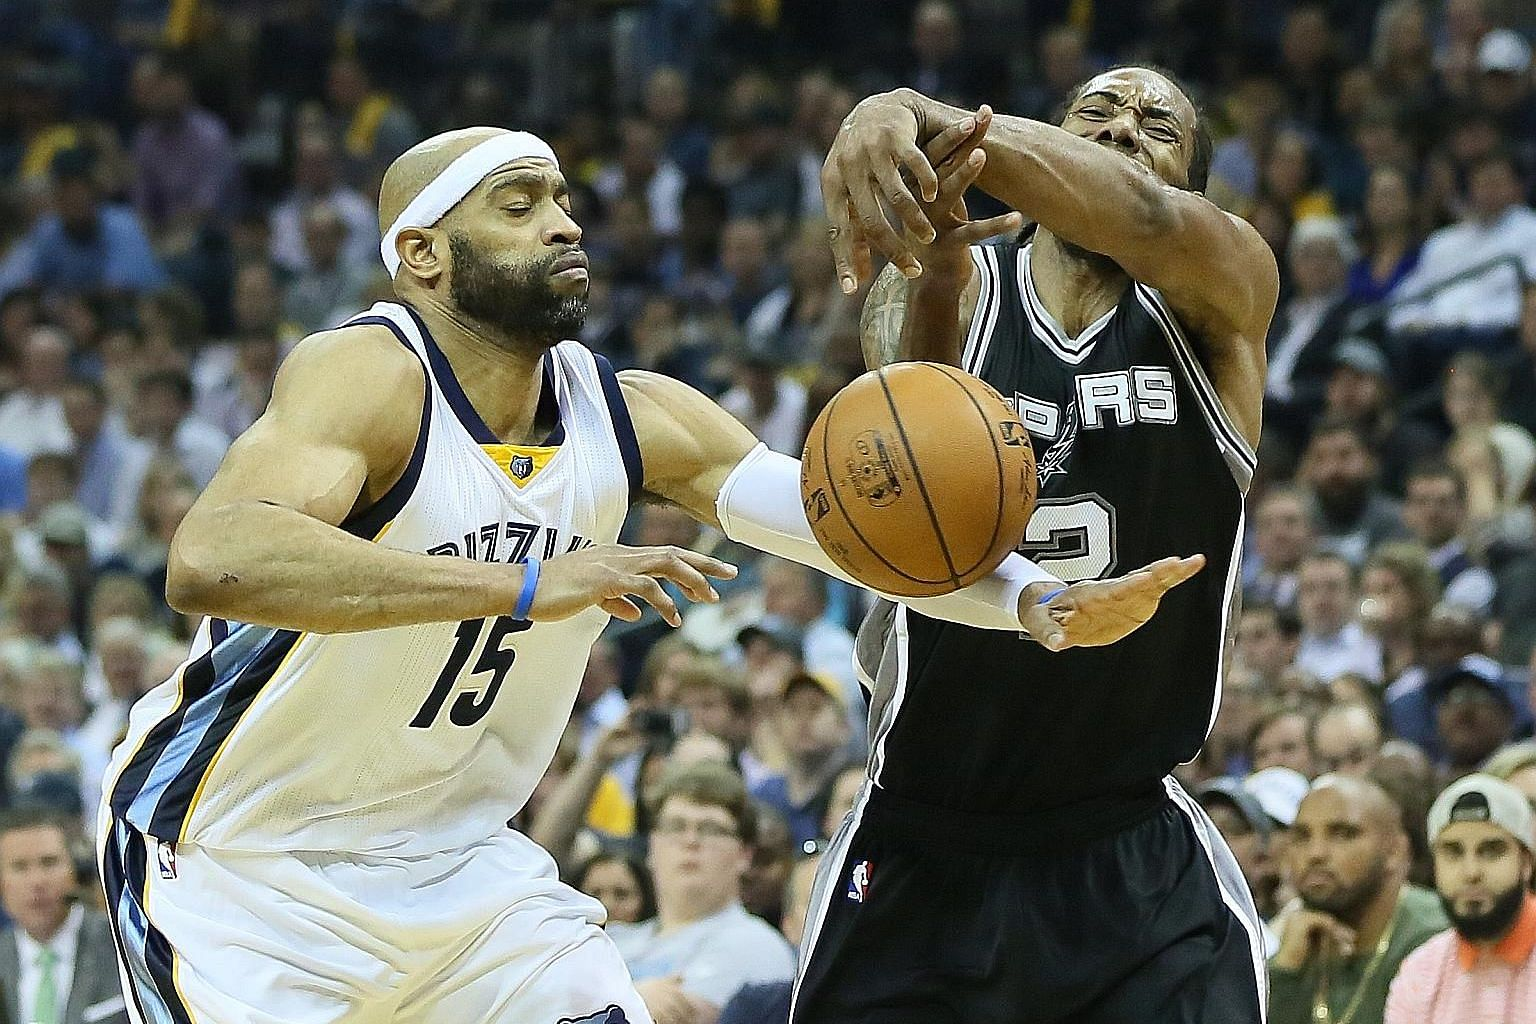 San Antonio Spurs' Kawhi Leonard has the ball knocked loose from his grip by the Memphis Grizzlies' Vince Carter. The Spurs forward led all scorers with 29 points as San Antonio put Memphis to rest 103-96, setting up a Conference semi-final showdown